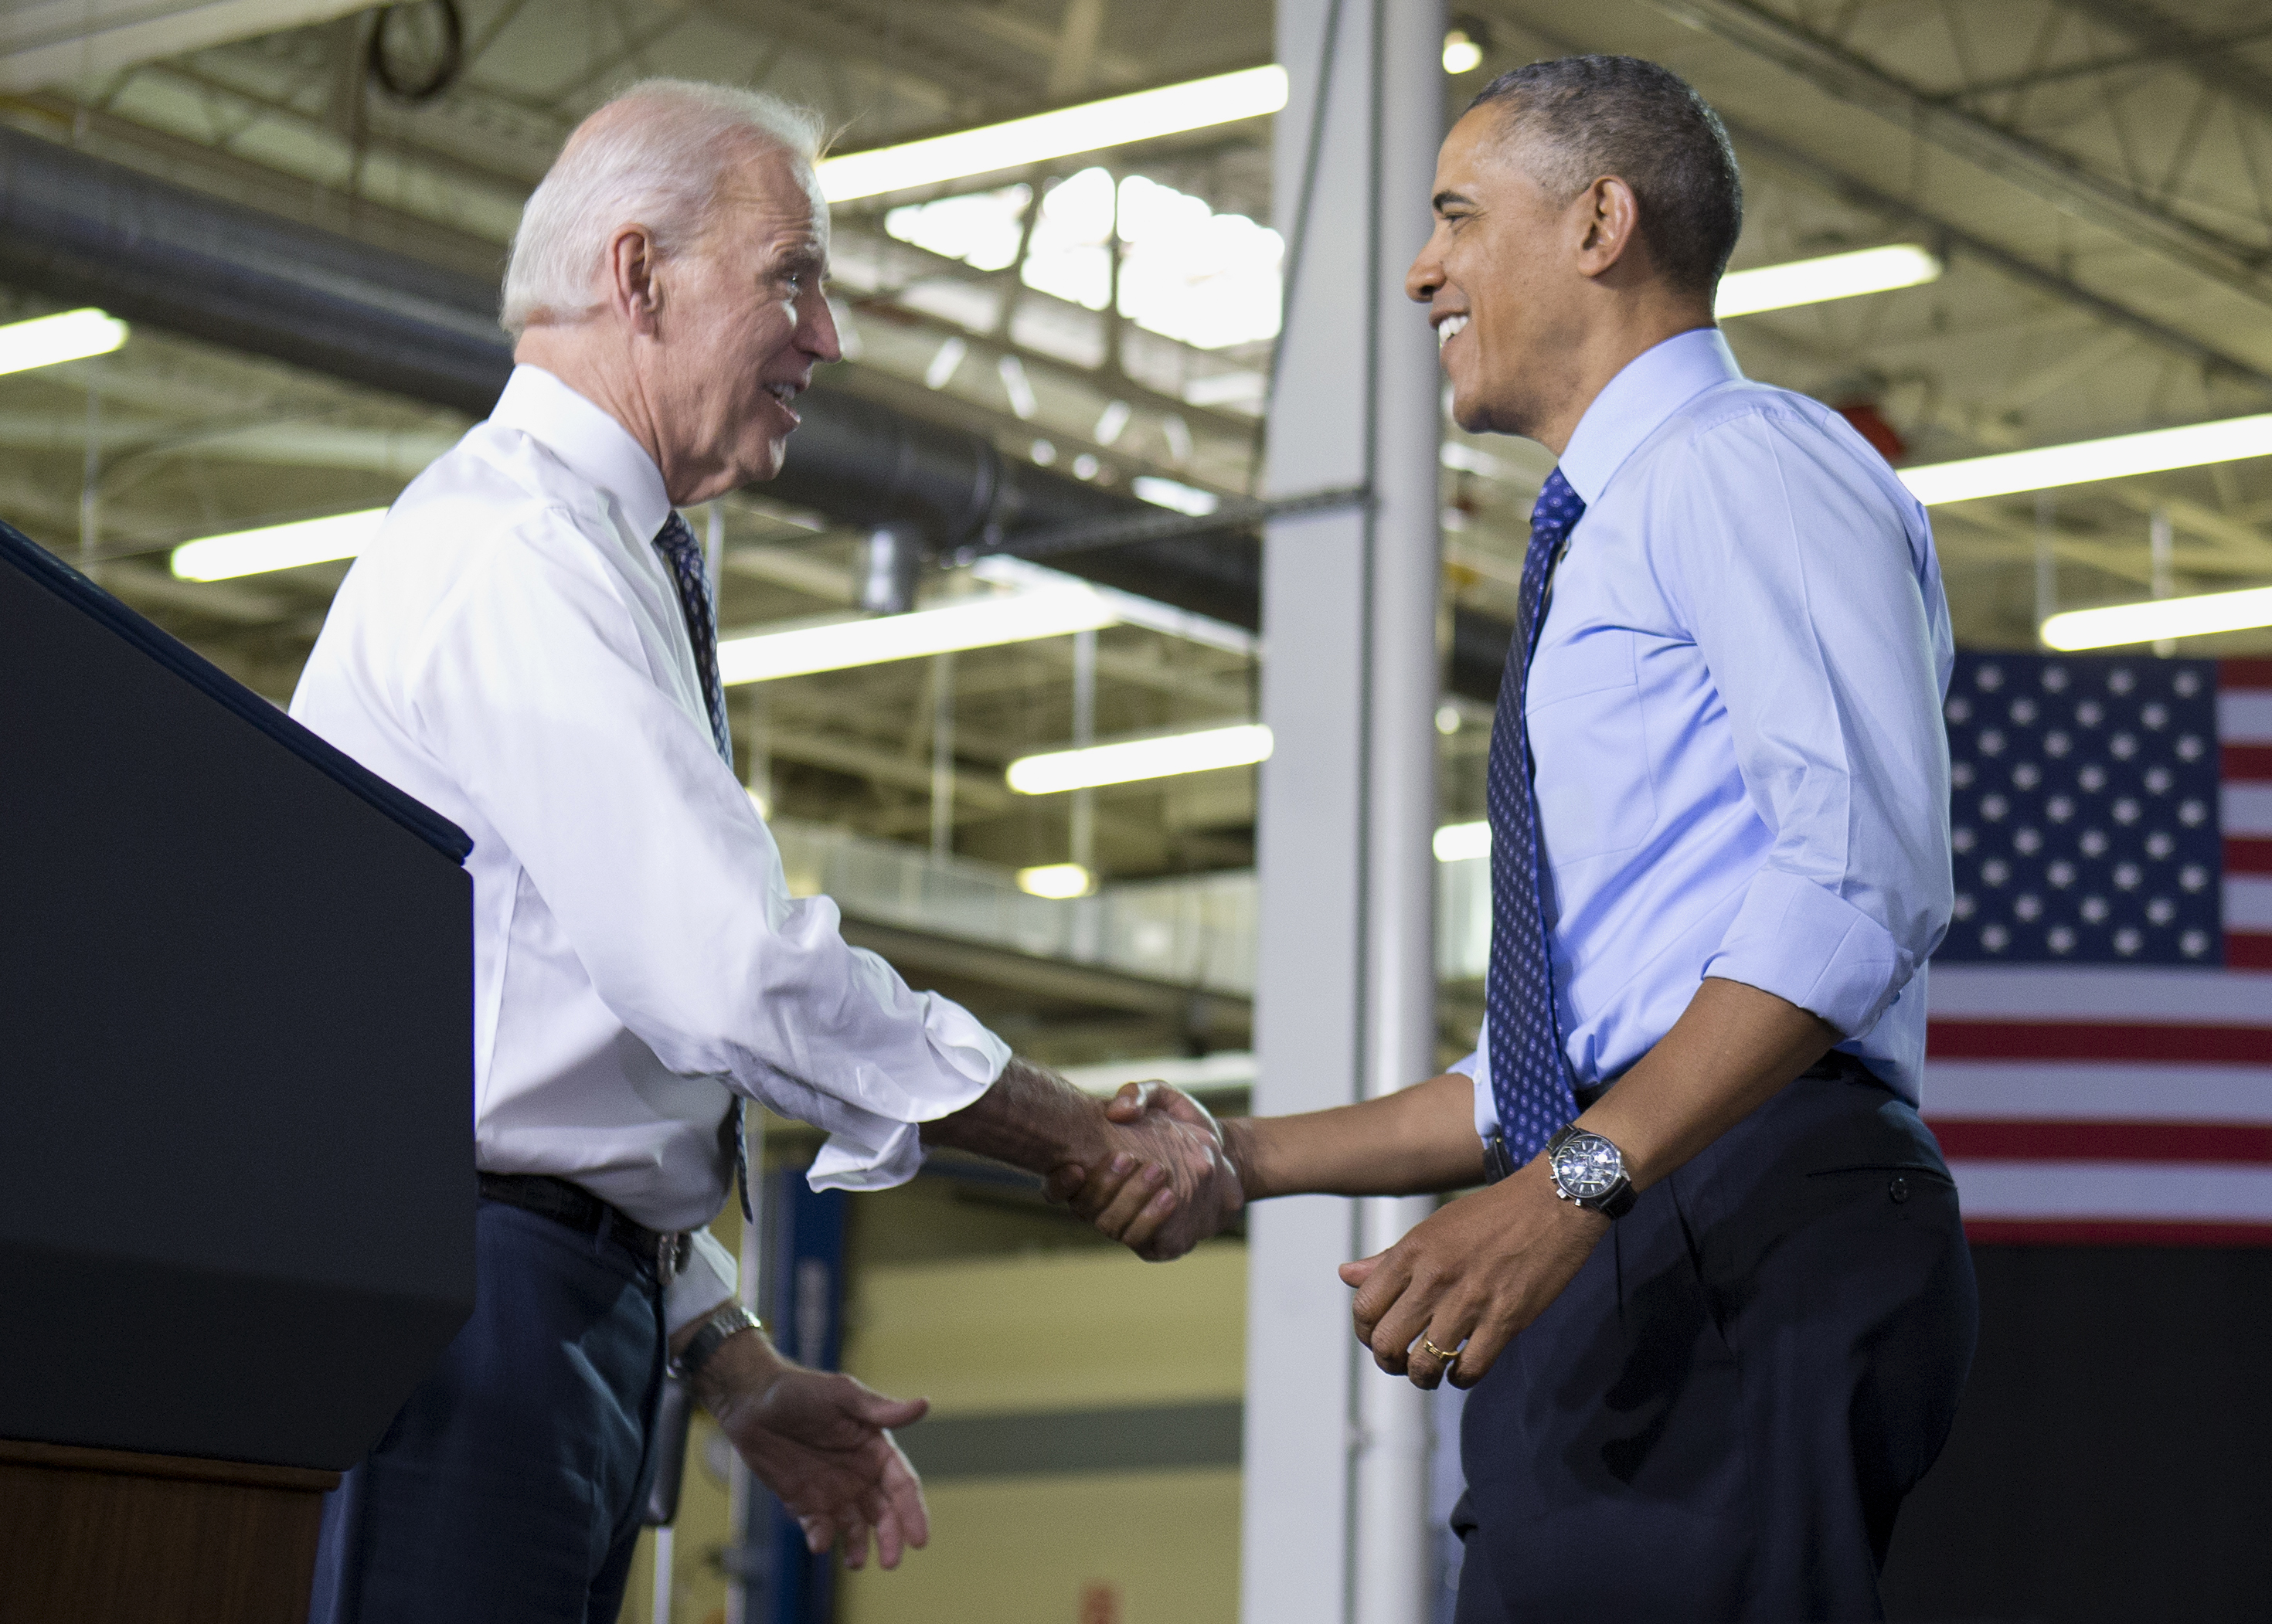 Vice President Joe Biden greets President Barack Obama as he arrives to speak at Community College of Allegheny County West Hills Center, Wednesday, April 16, 2014, in Oakdale, Pa., about the importance of jobs-driven skills training.